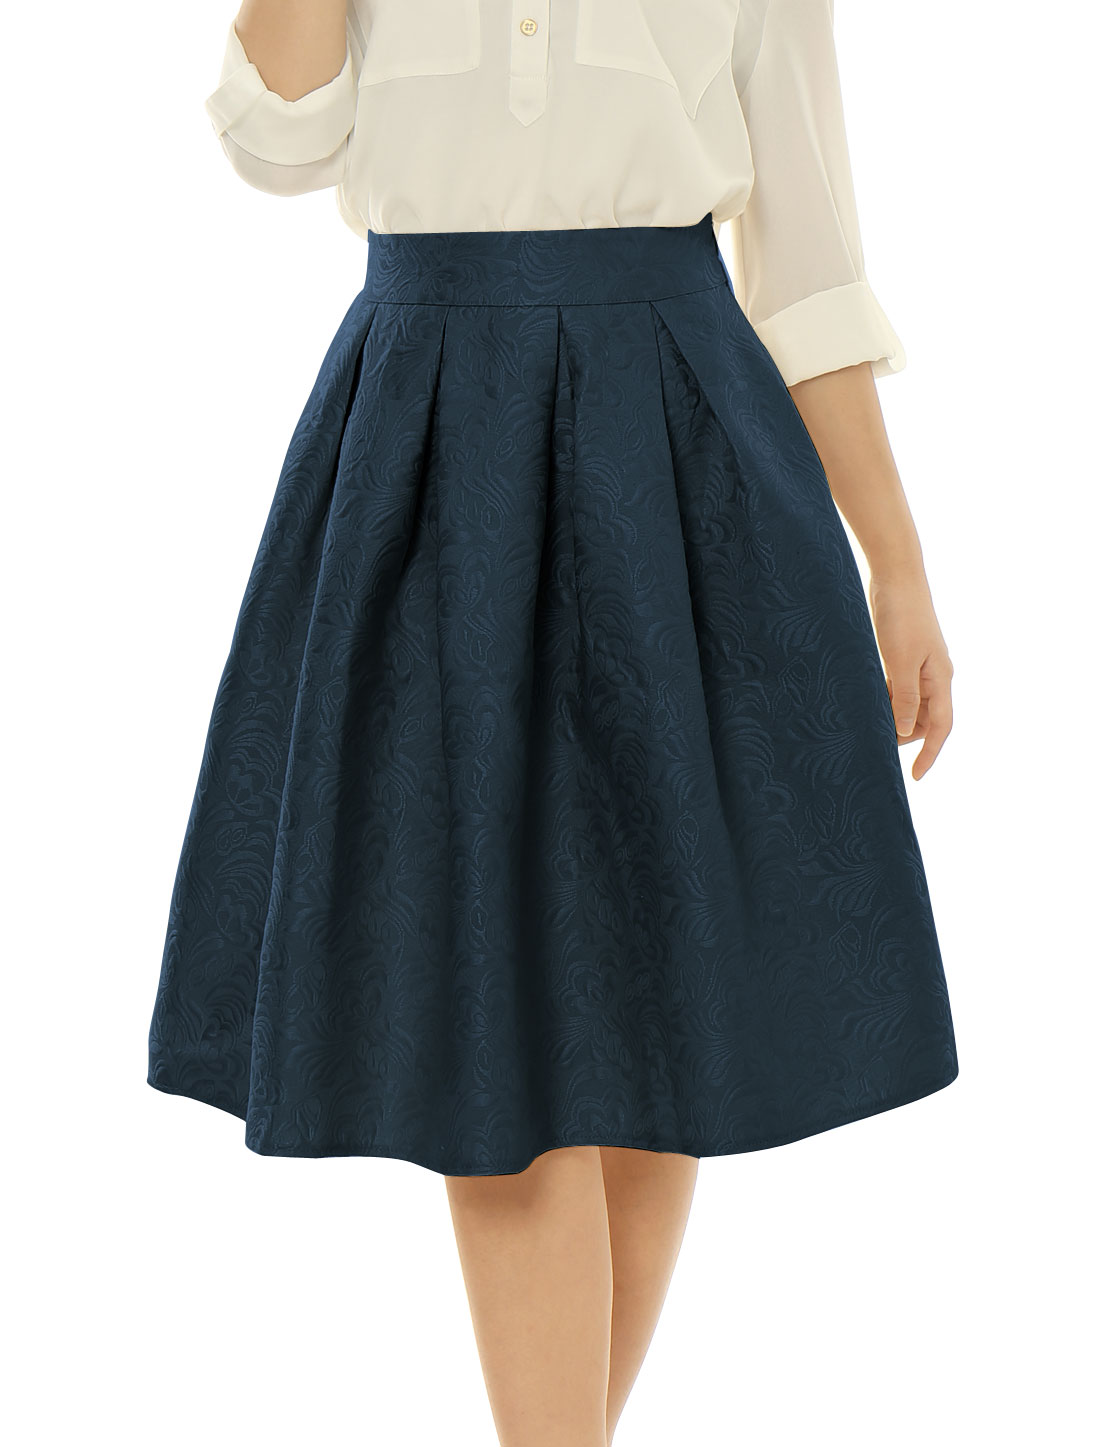 Allegra K Woman High Waist Floral Jacquard Pleated Full Skirt Navy Blue XL